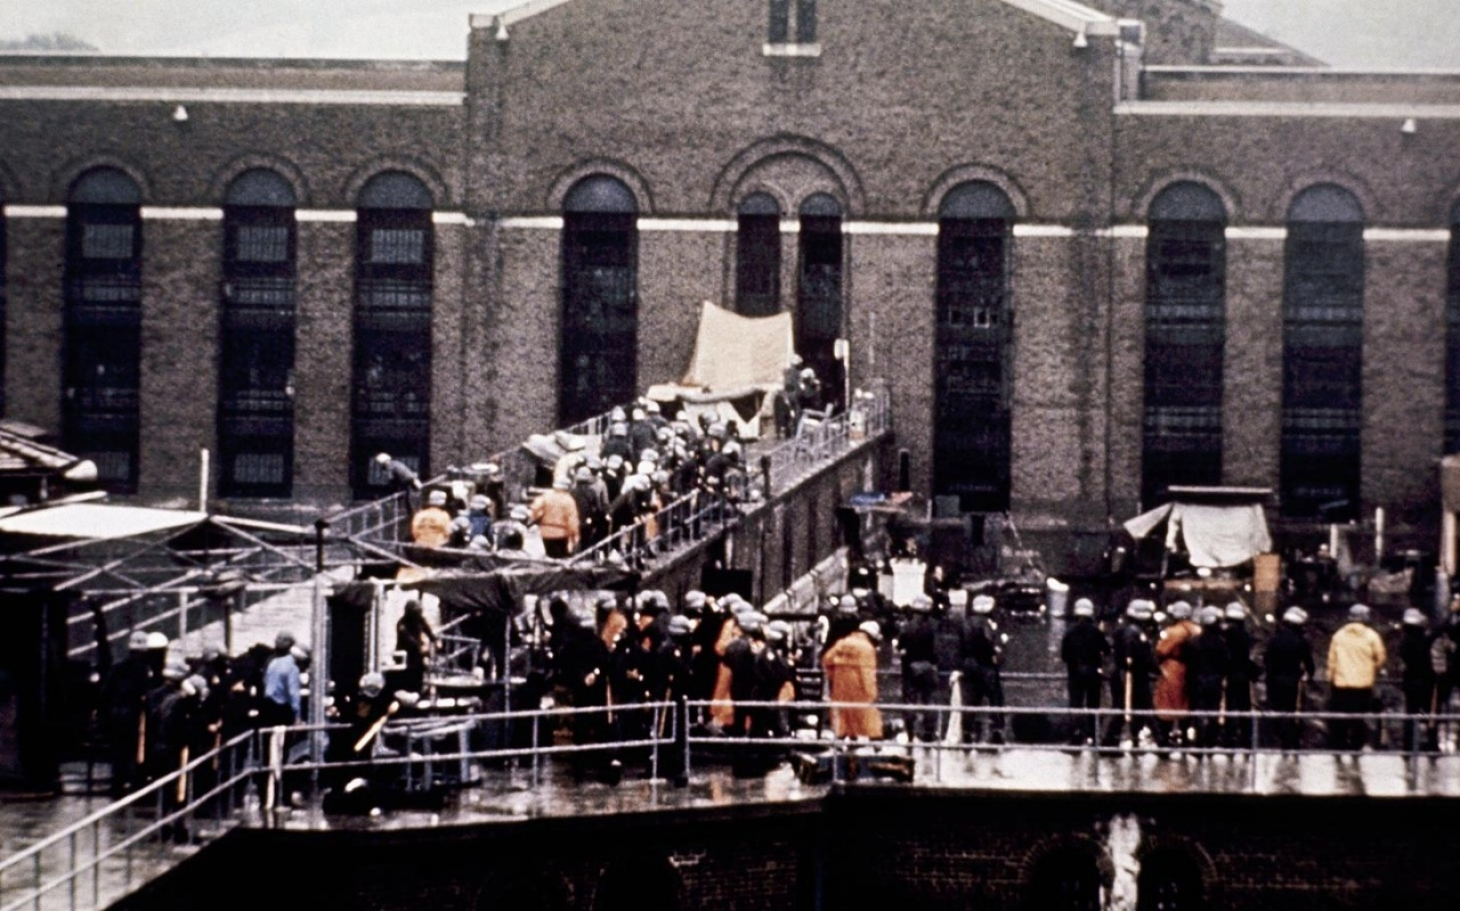 10 Worst Prison Riots of All Time